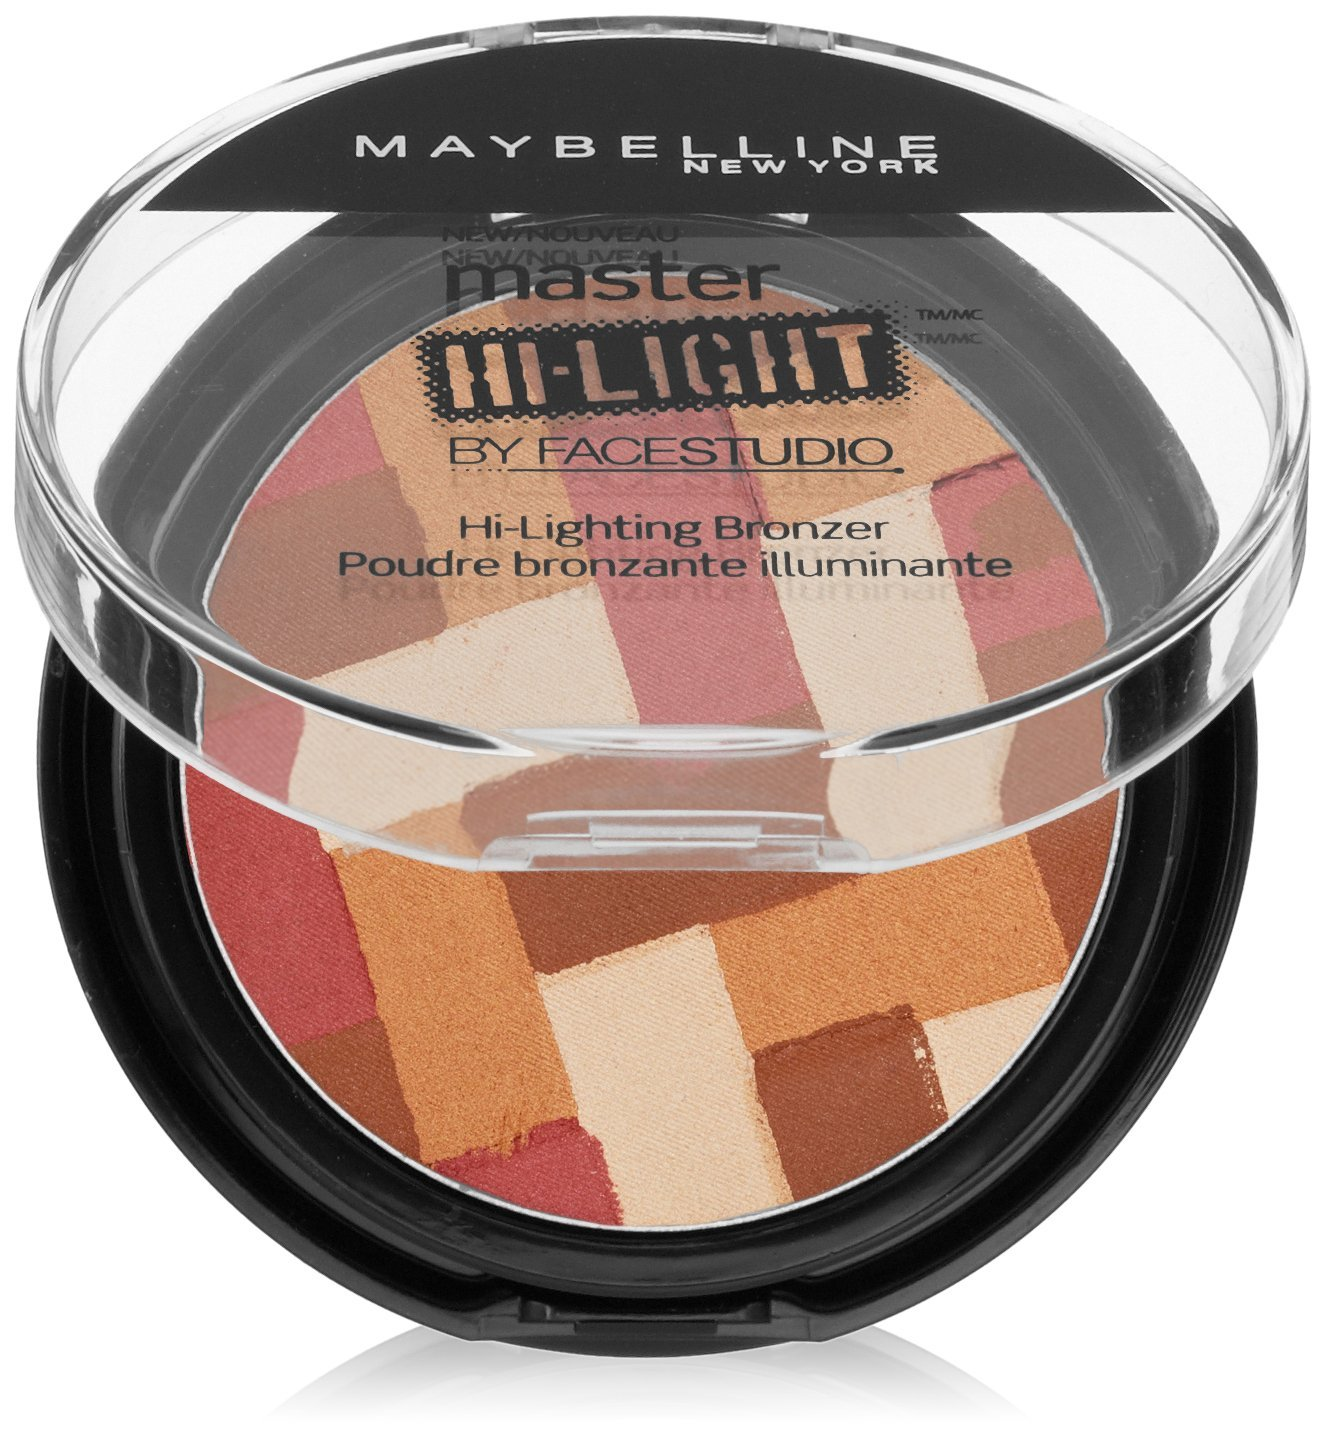 Primary image for Maybelline New York Face Studio Master Hi-Light Bronzer, Deep Bronze, 0.31 Ounce